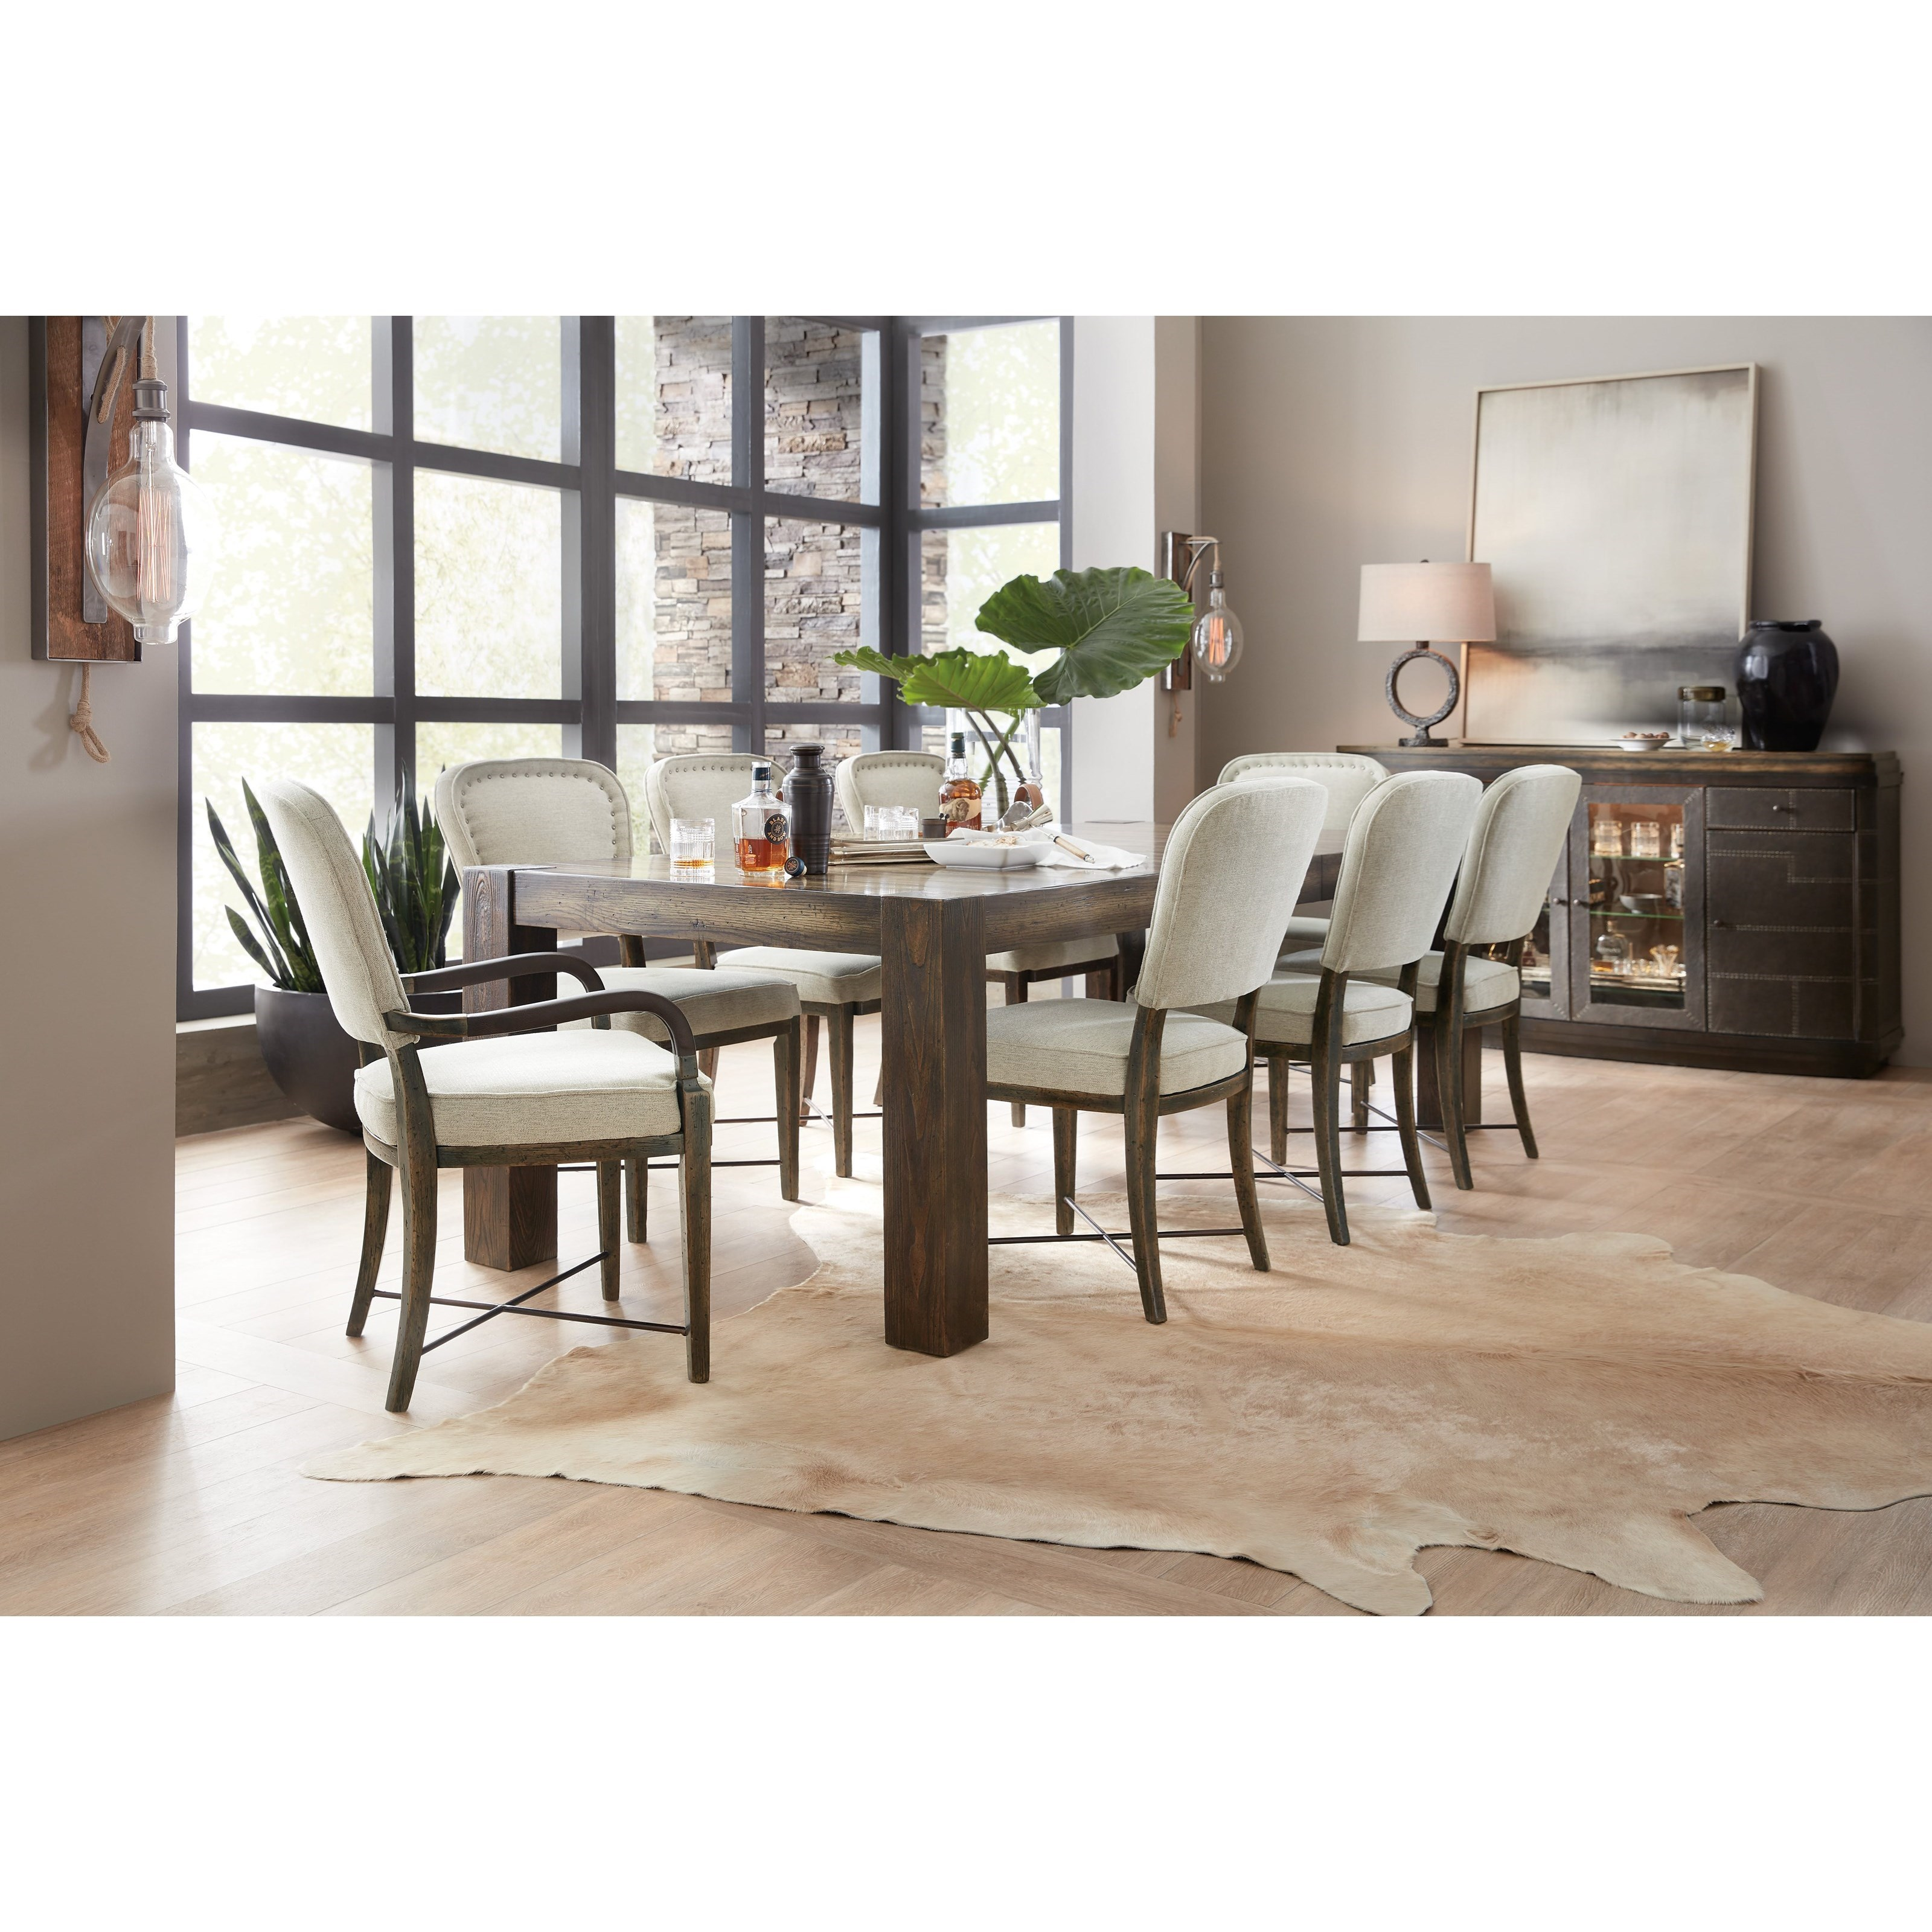 American Life-Crafted Formal Dining Room Group at Williams & Kay